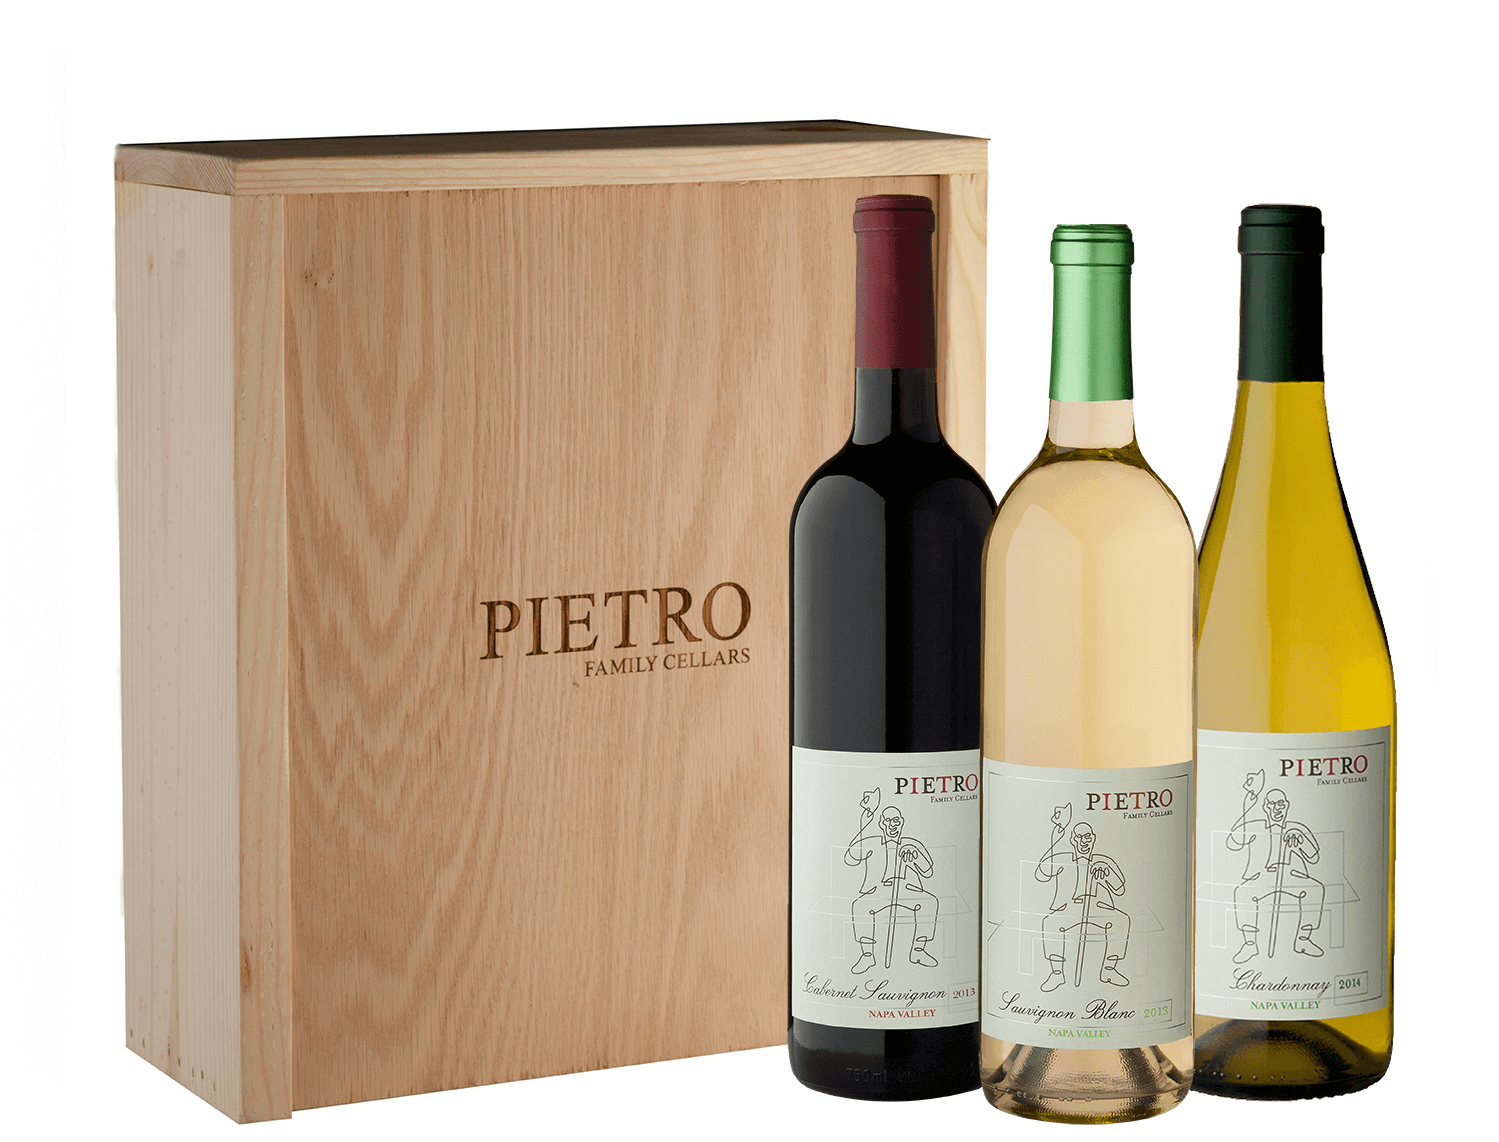 Pietro Family Cellars Trio in Wood Gift Box